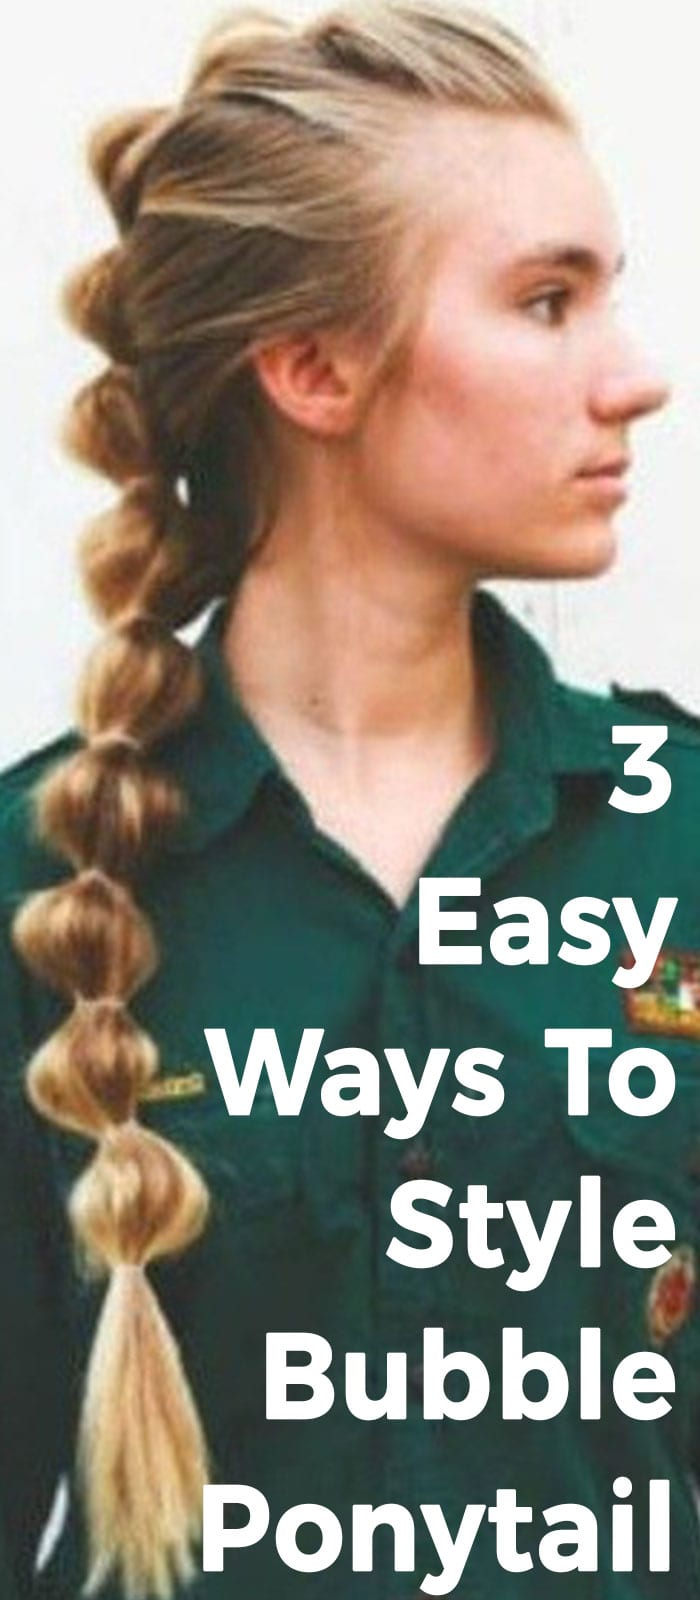 3 Easy Ways To Style Bubble Ponytail